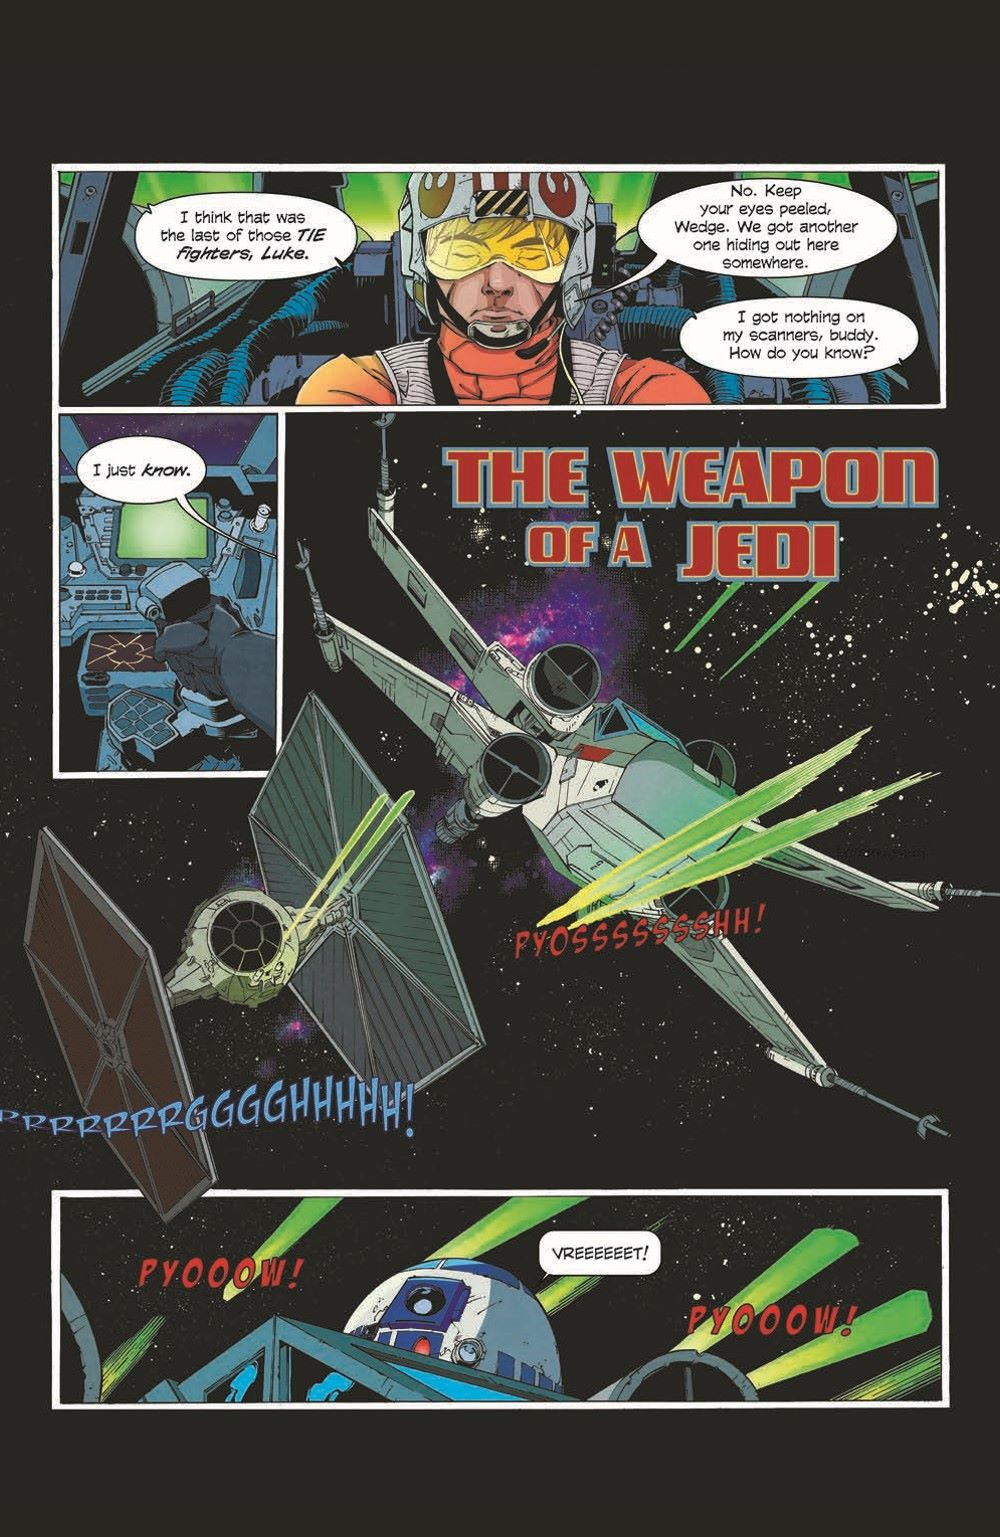 SWA_Weapons01_pr-3 ComicList Previews: STAR WARS ADVENTURES THE WEAPON OF A JEDI #1 (OF 2)